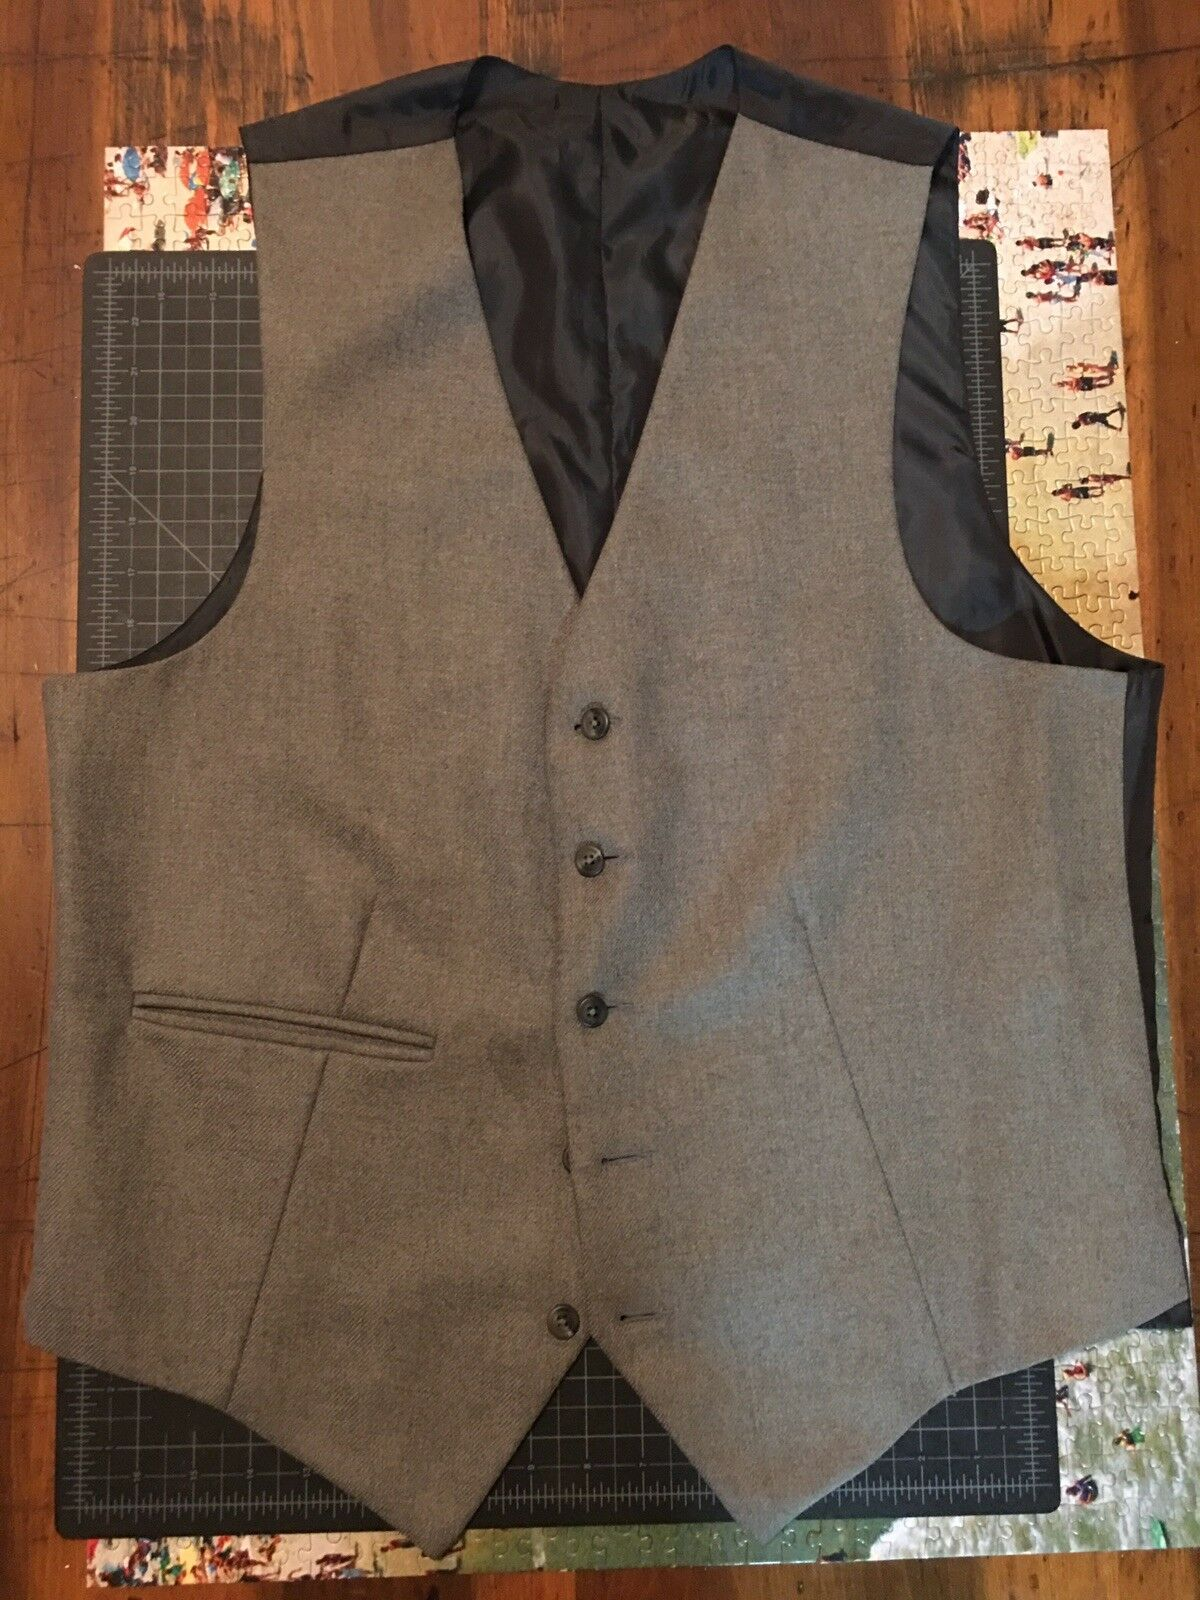 NWT Social Suicide Hand Made Dress Vest Size 44 100% New Wool